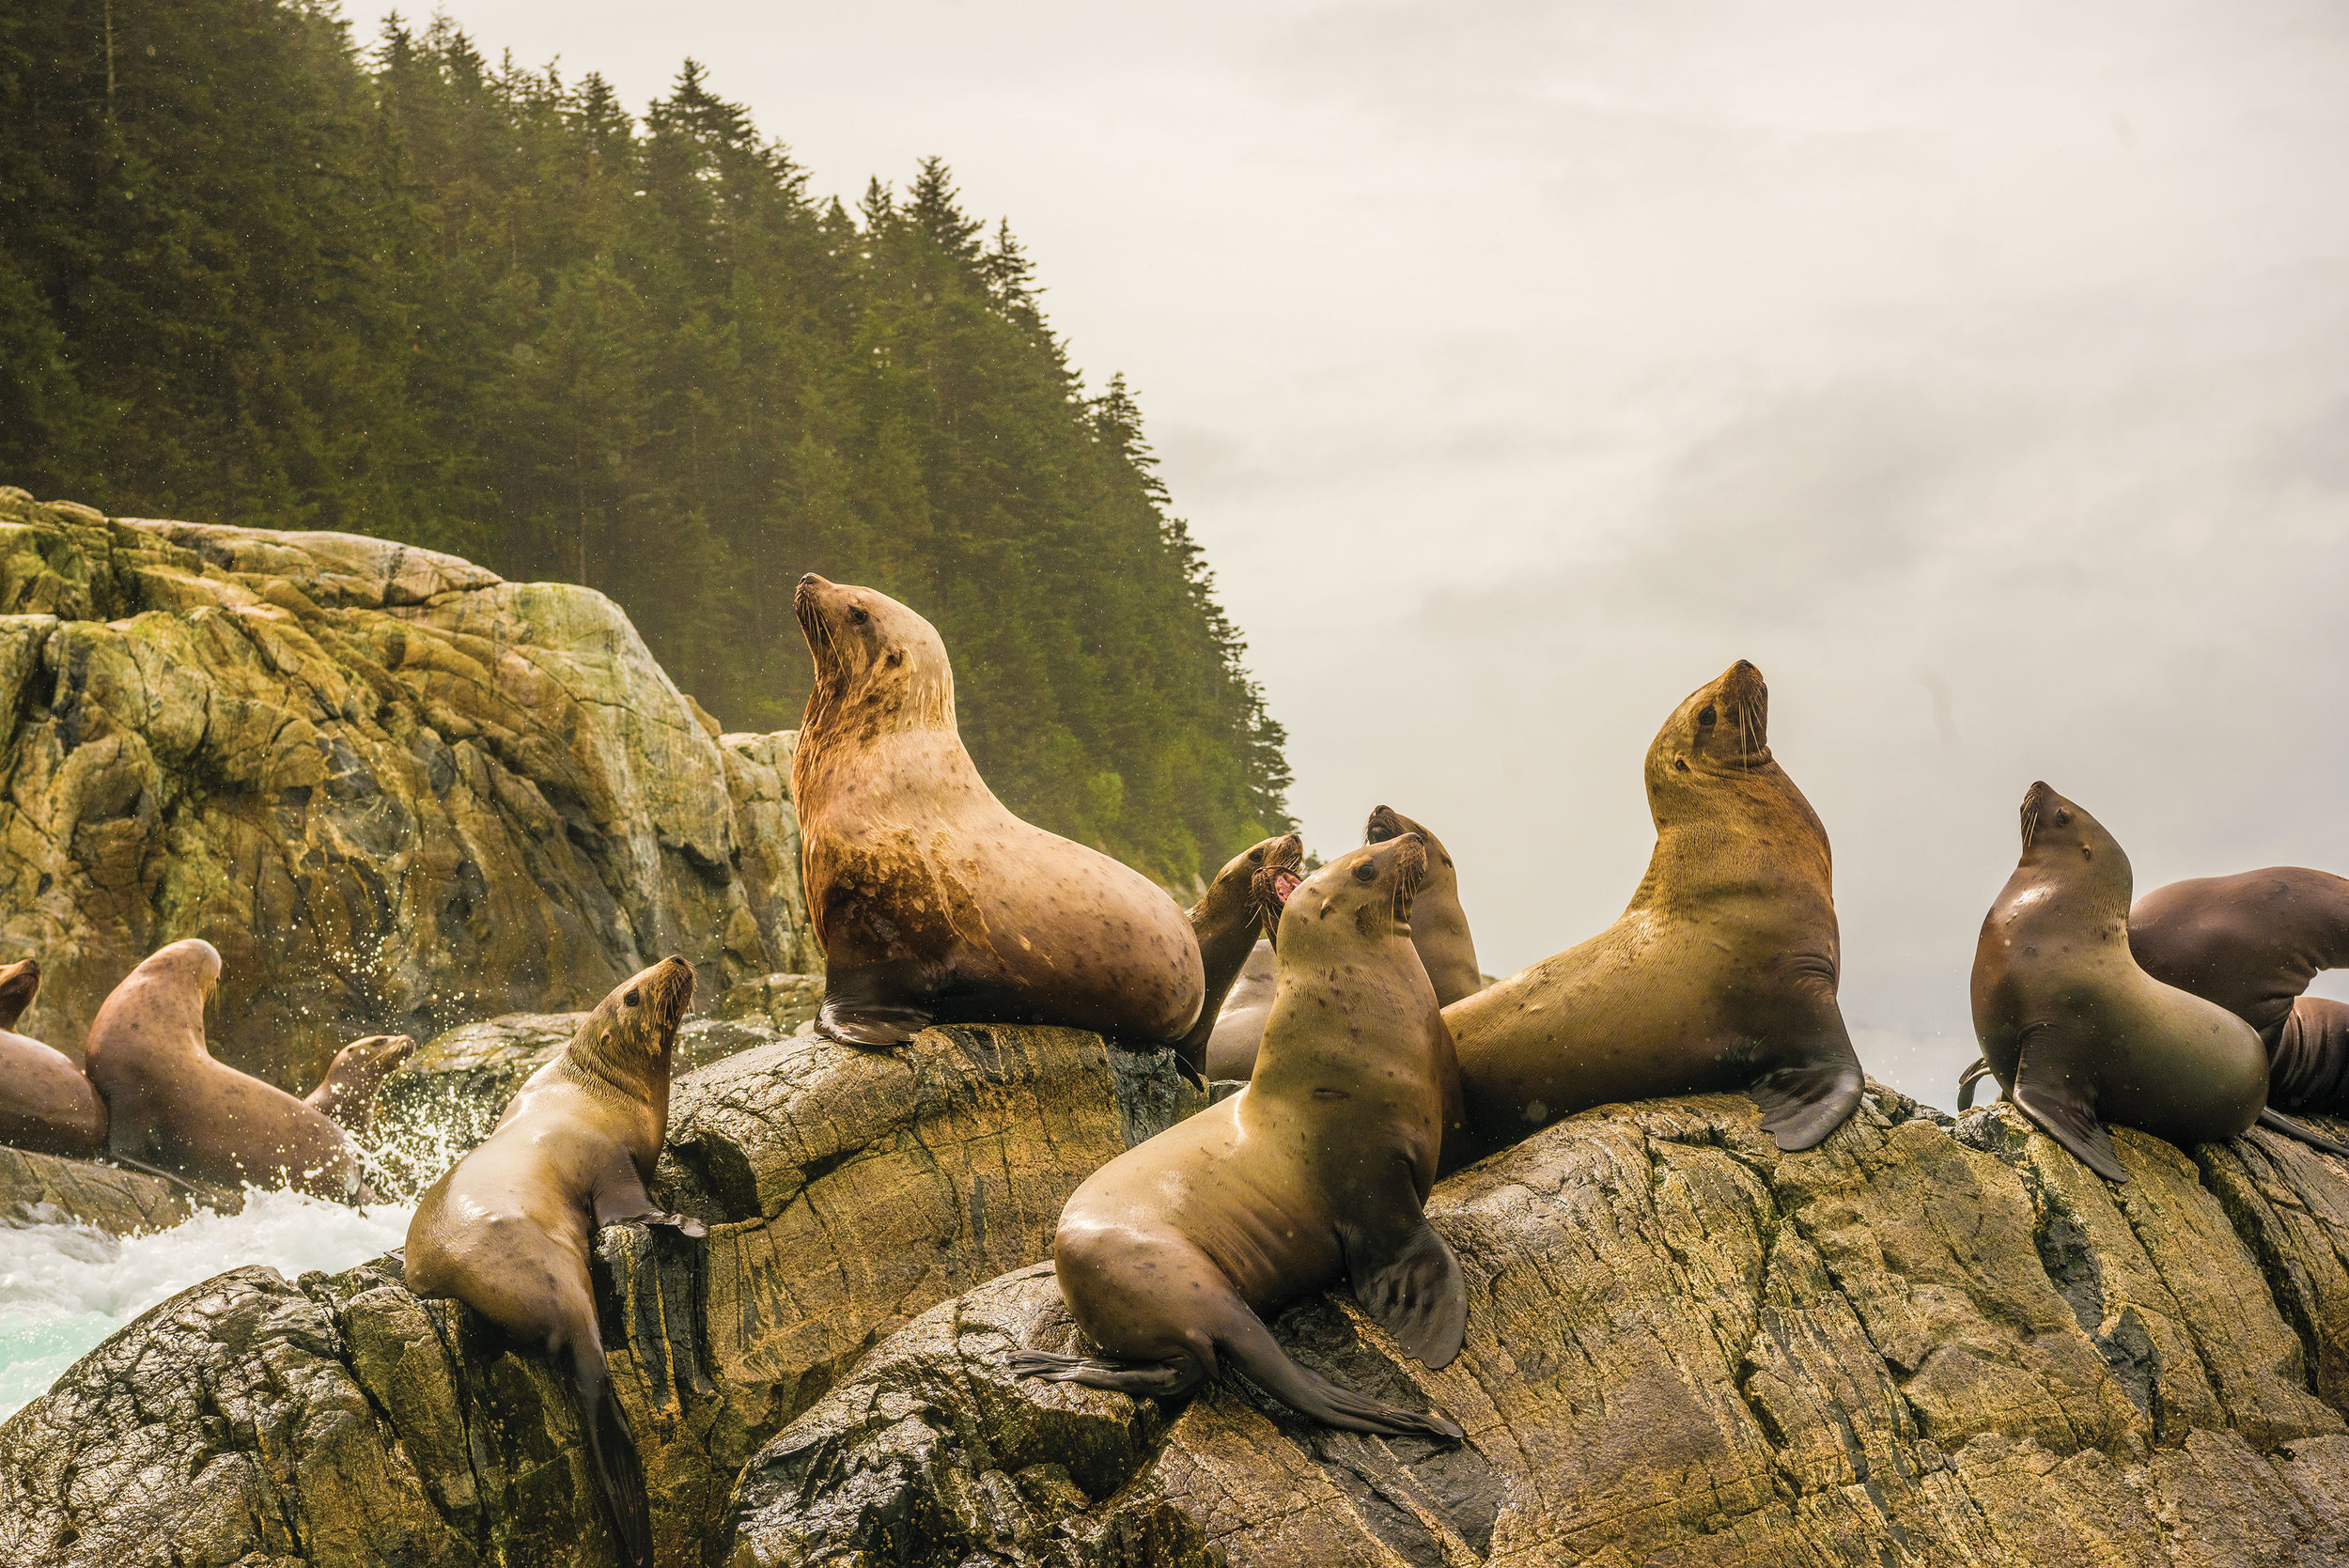 The Inian Islands, near where the Pacific Ocean comes into the northern end of Alaska's inside passage. This area is very rich with nutrients and a variety of marine mammals, such as sea lions.